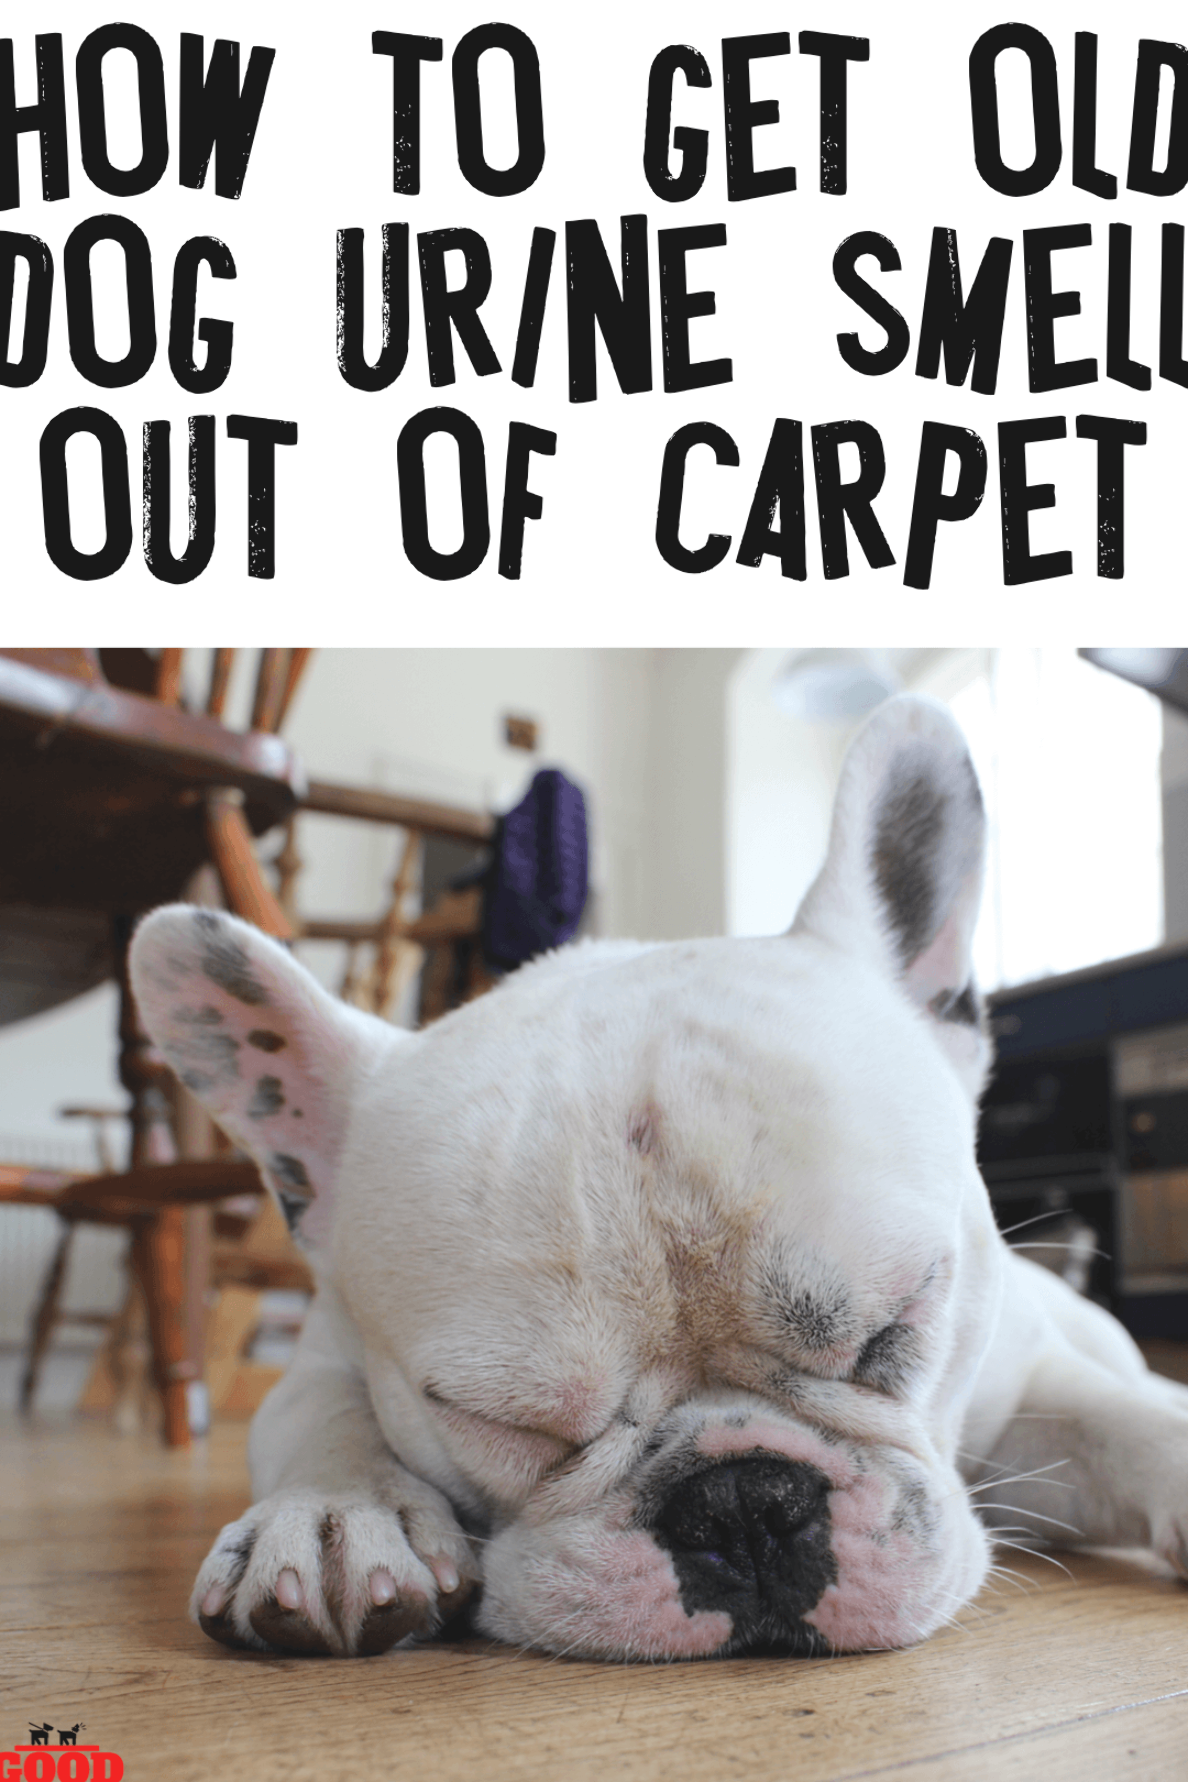 How To Get Old Dog Urine Smell Out Of Carpet Dog Pee Smell In The House Is Hard To Get Out Check Out These Pet Parent Cleanin In 2020 Dog Pee